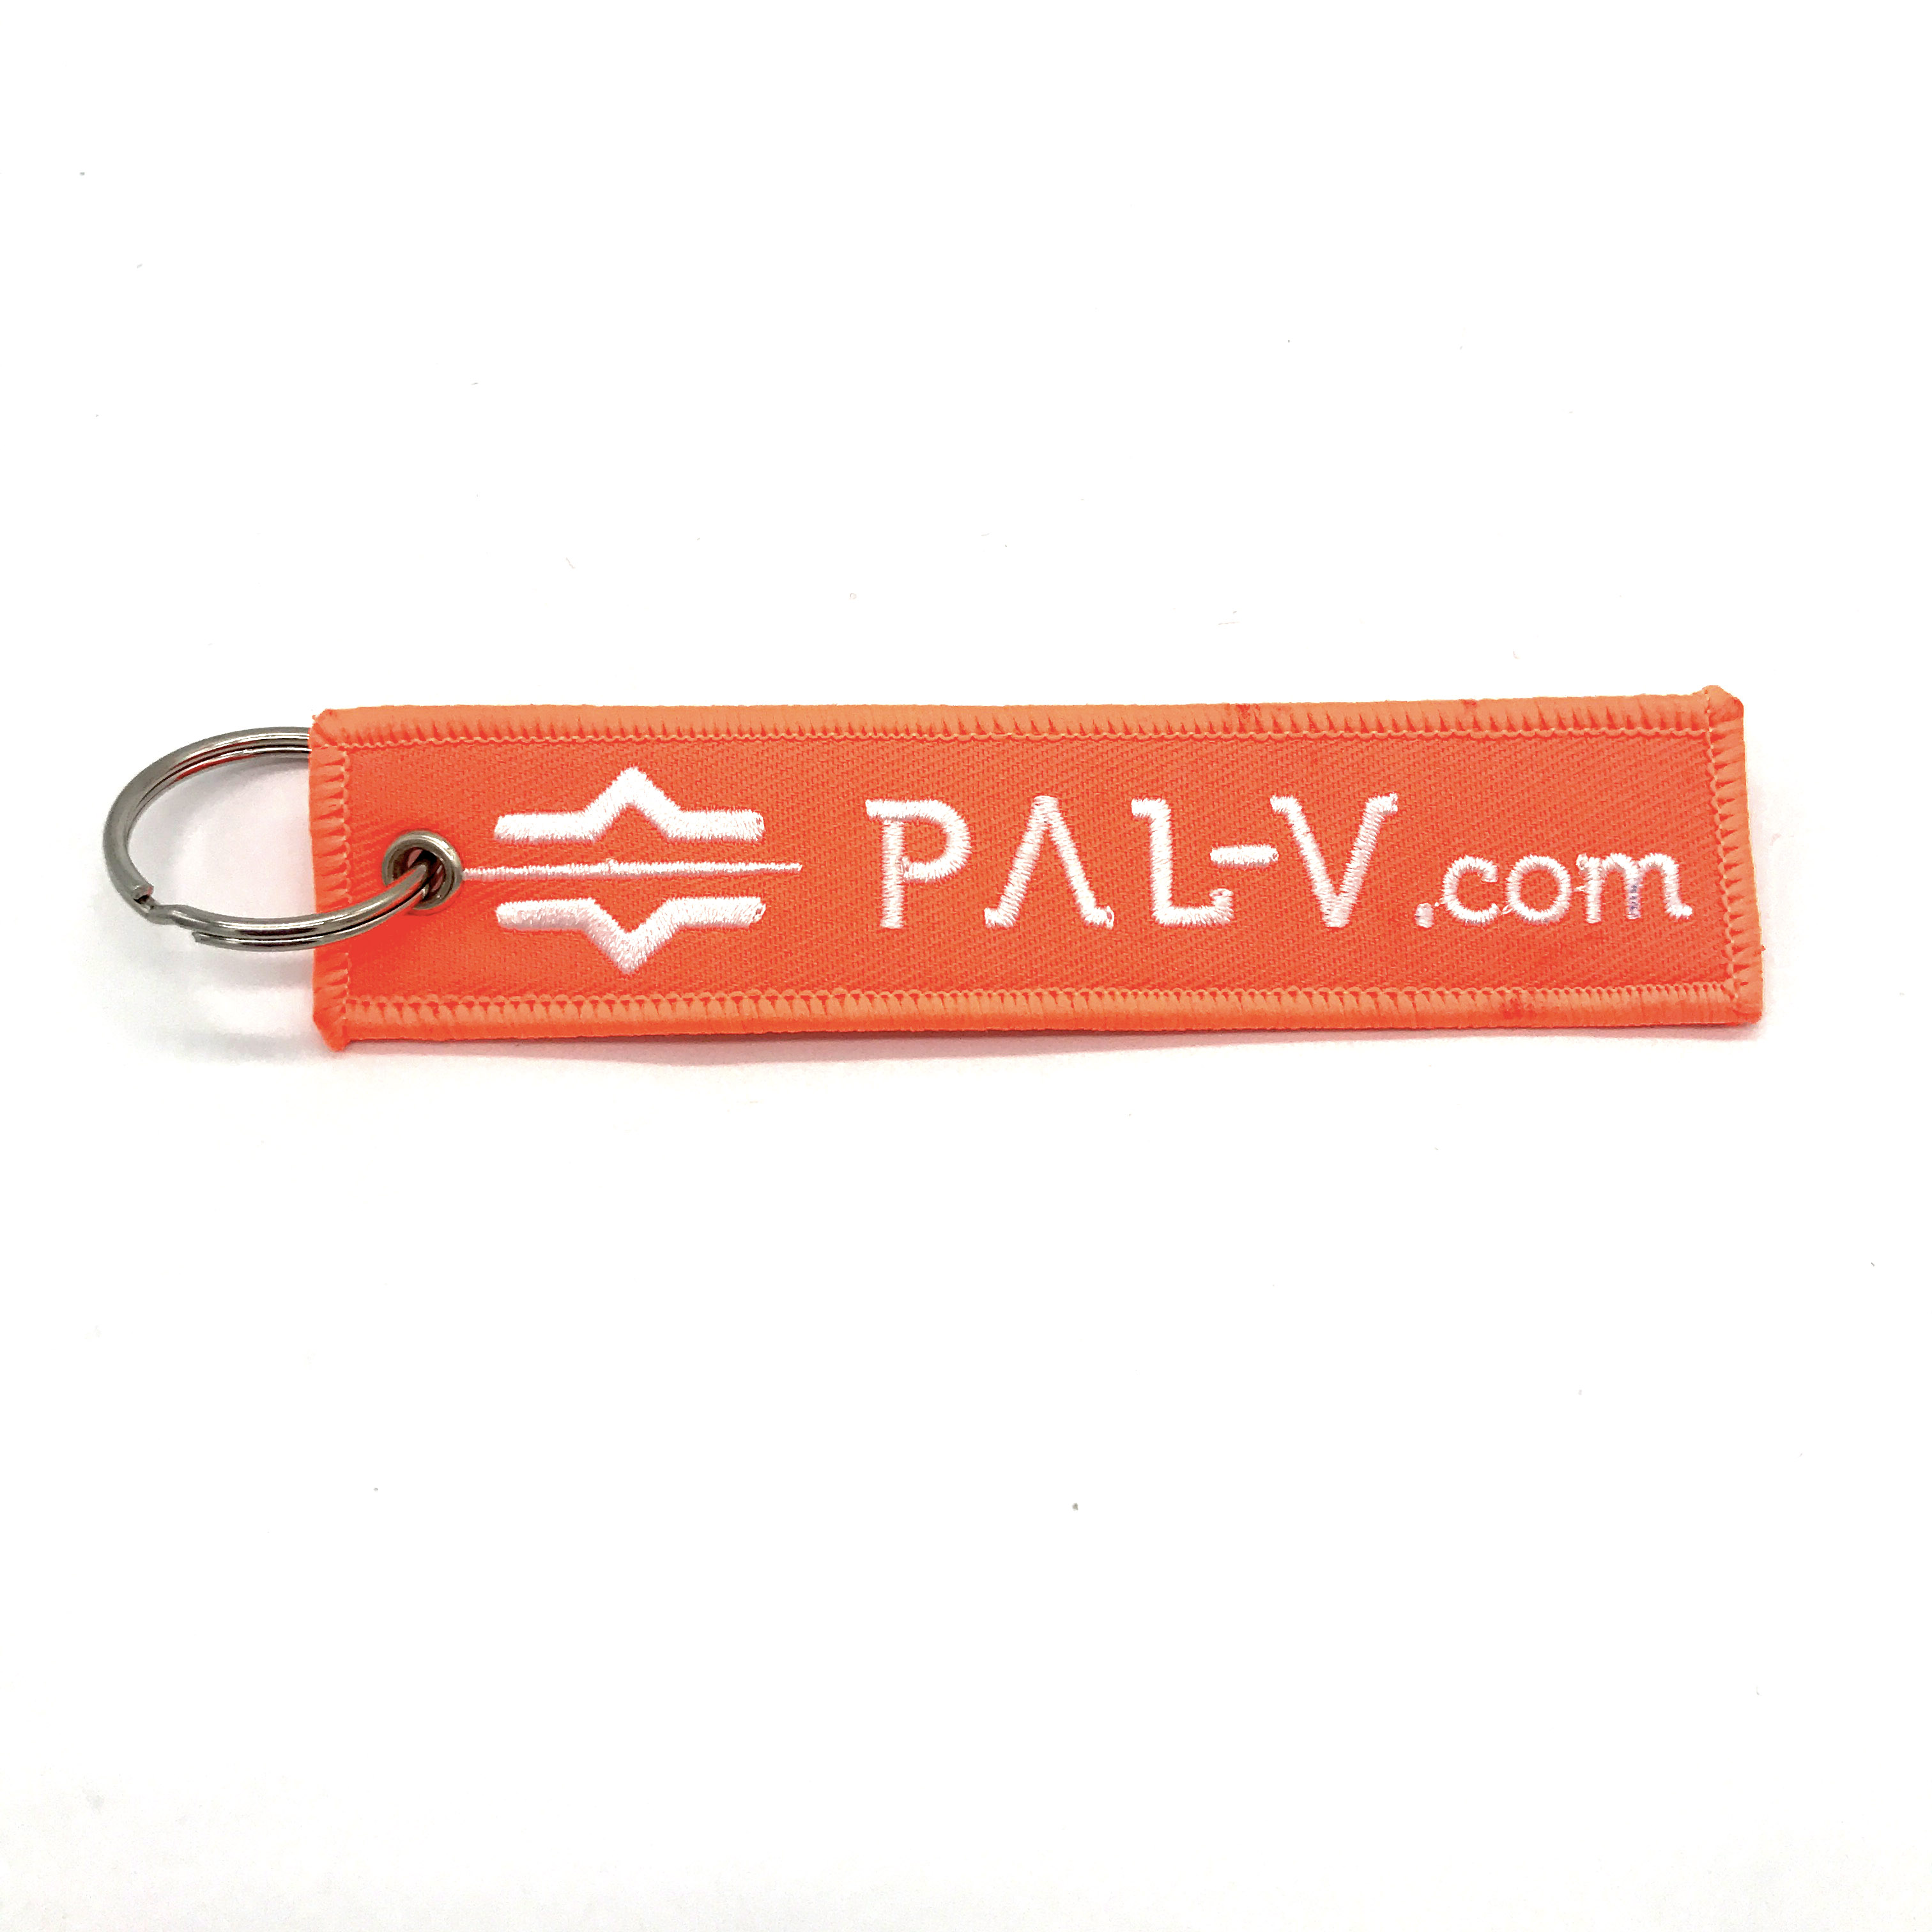 twill polyester fabric woven key chain jet tag for promotion marketing